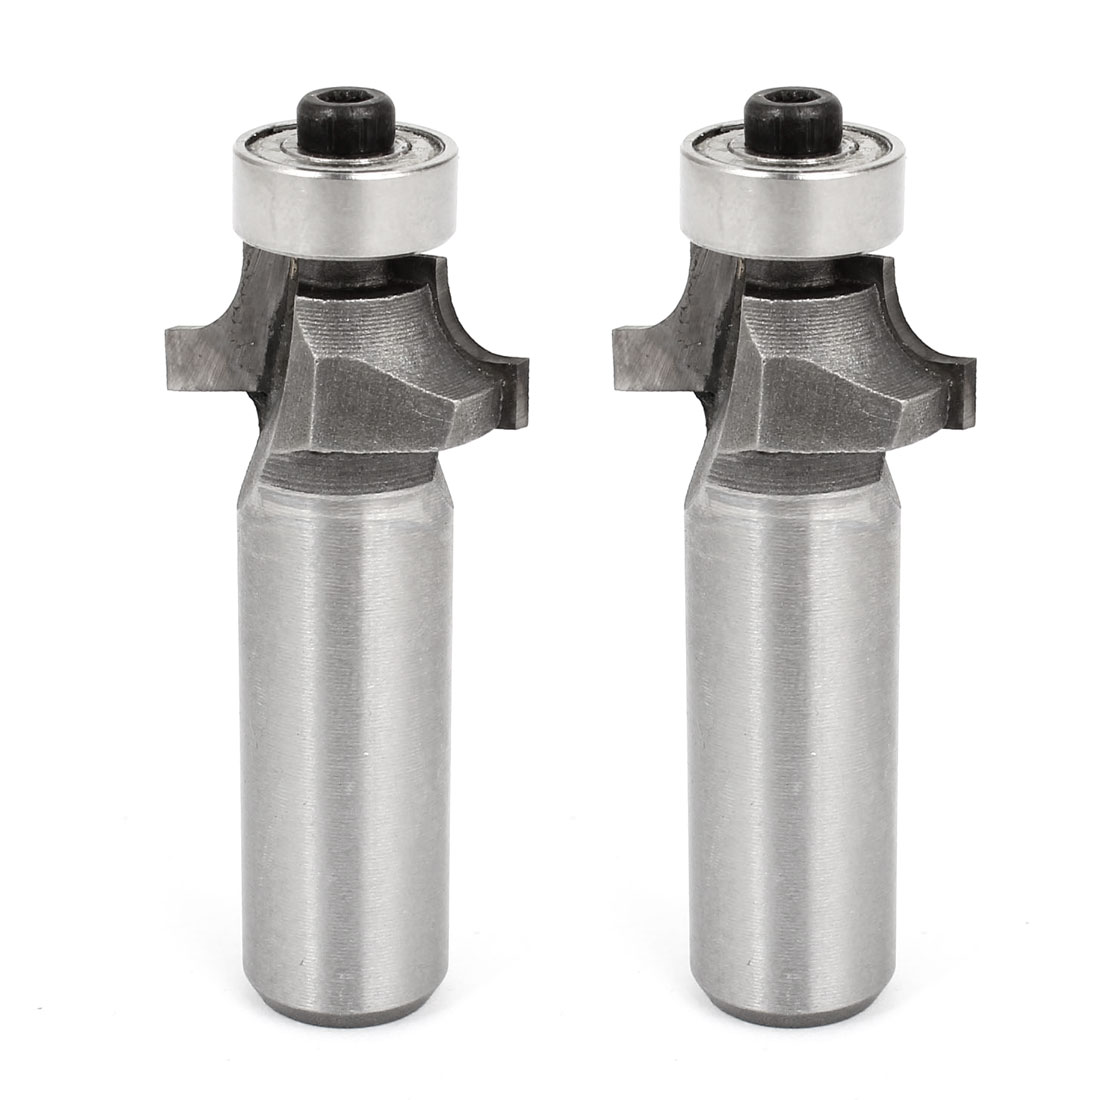 "2 Pcs Woodworking Corner Rounding Round Over Router Bit Tool 1/2"" x 5/16"""